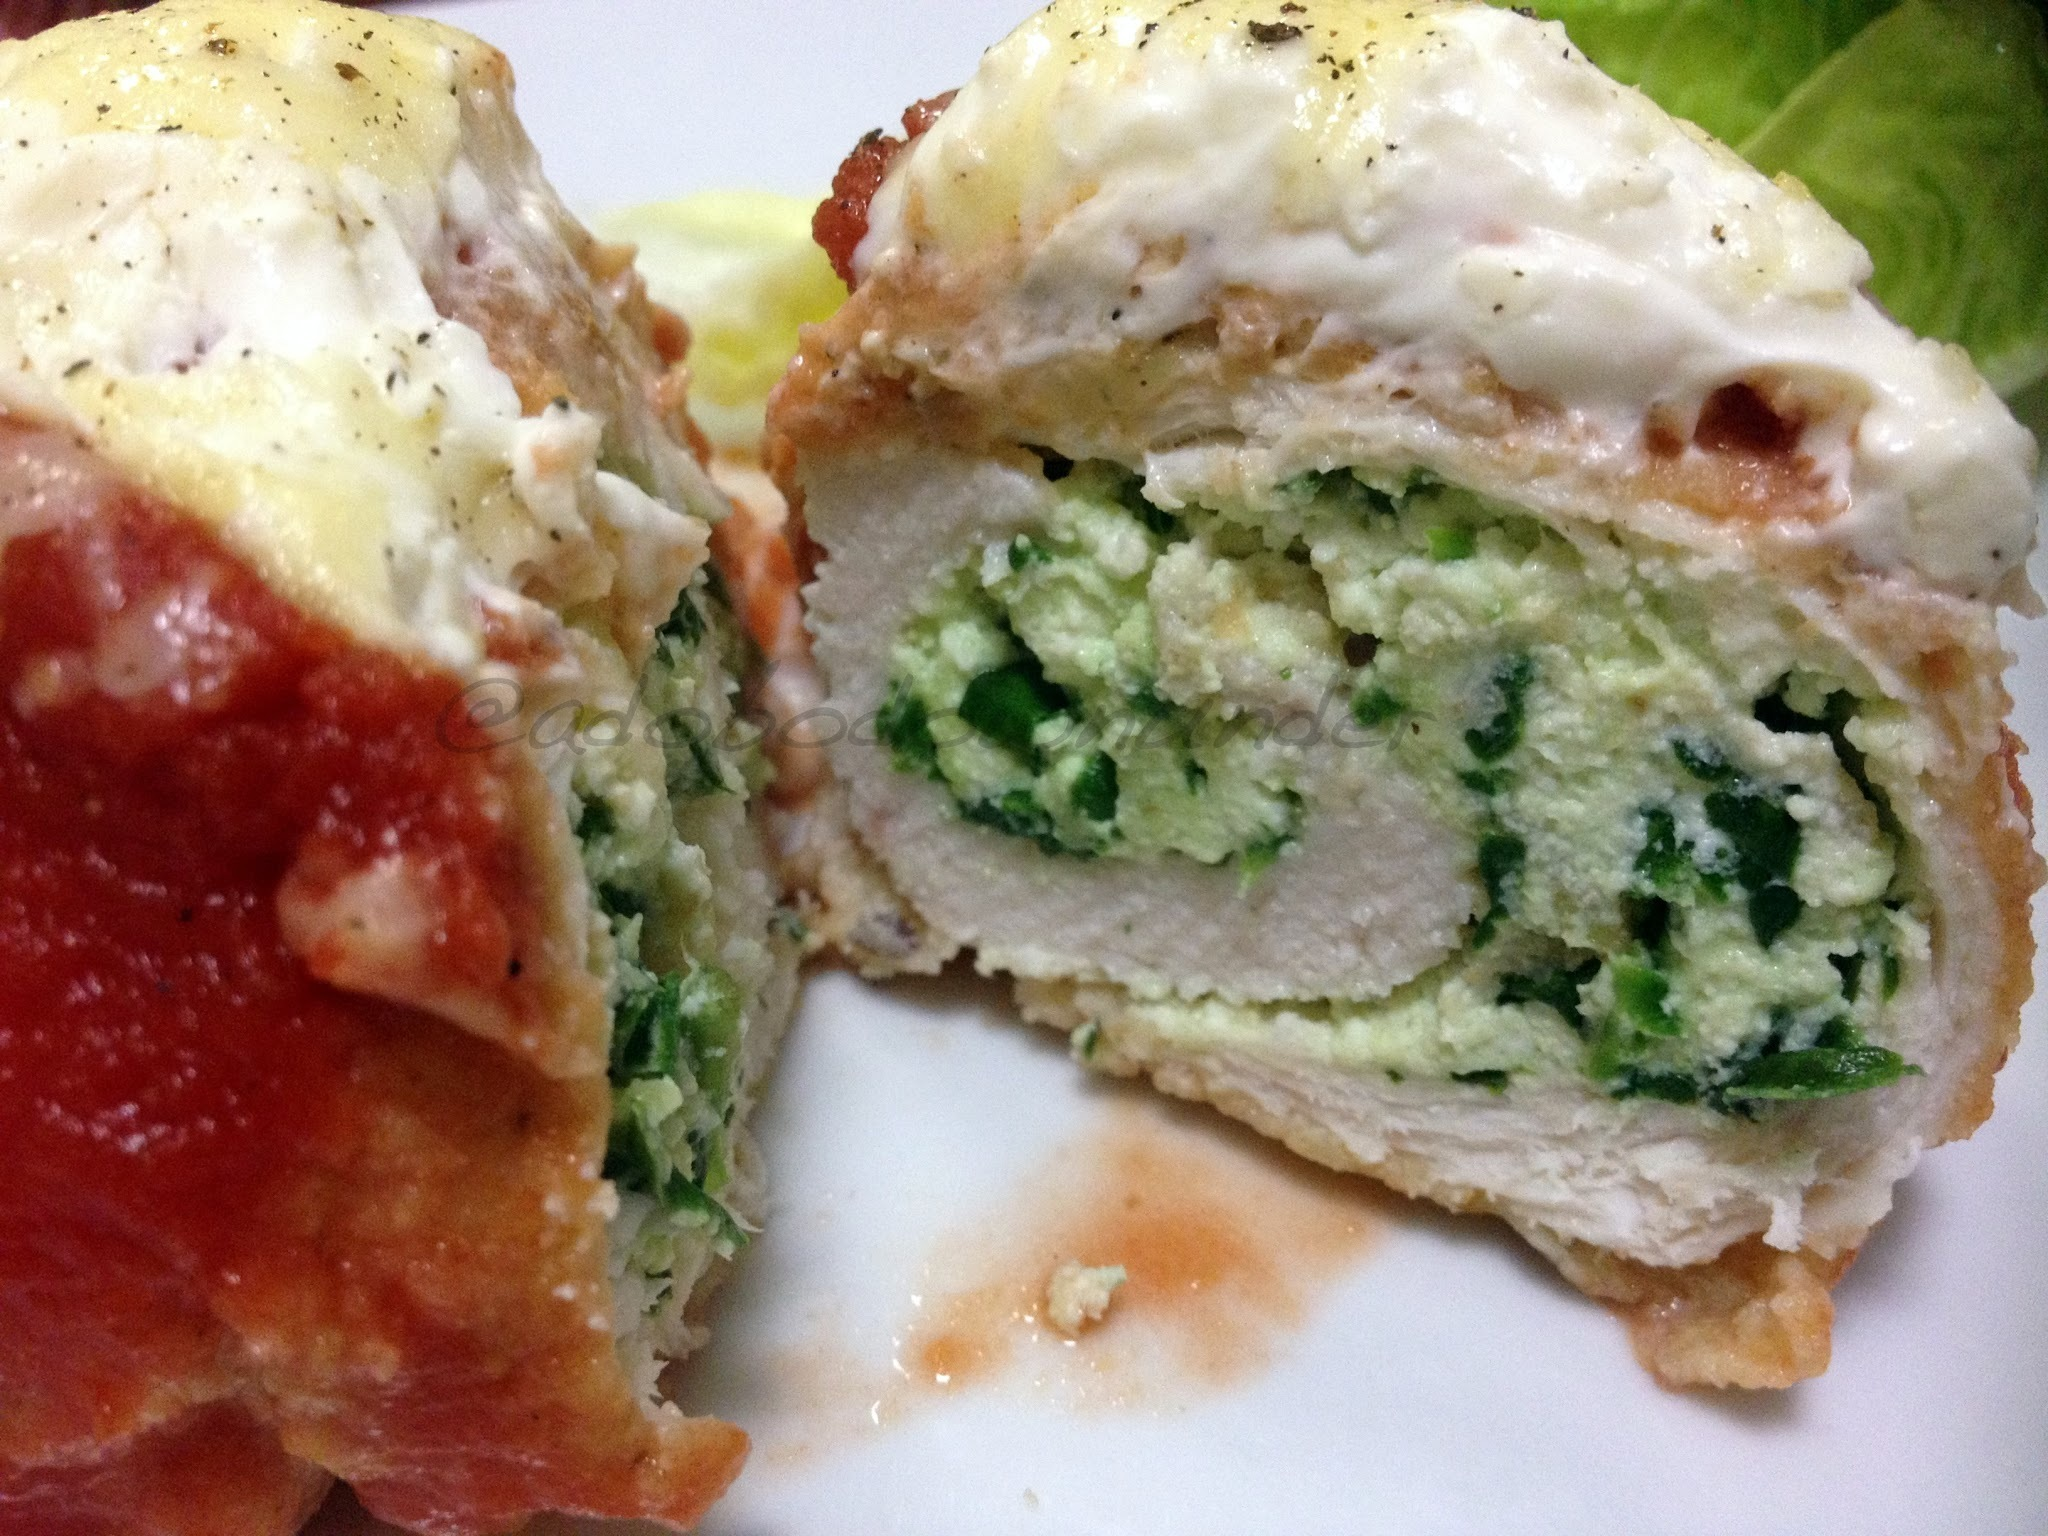 Chicken rollatini with ricotta and spinach